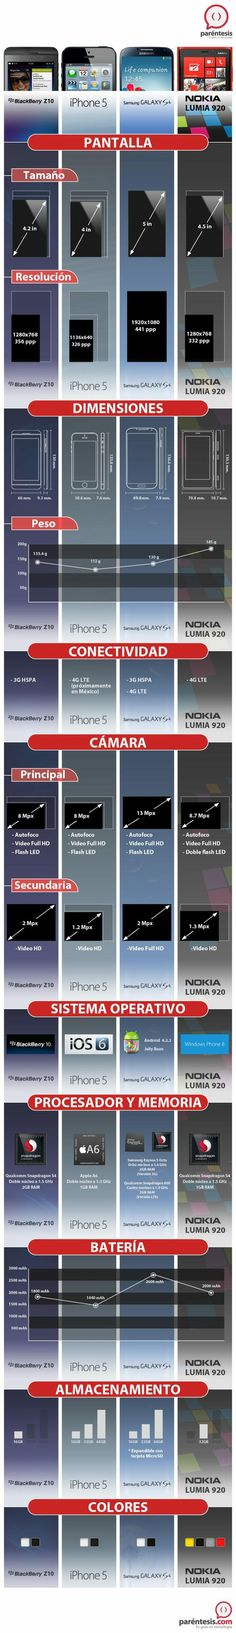 iPhone 5 vs. Z10 vs. Galaxy S4 vs. Luimia 920 #infografia #infographic